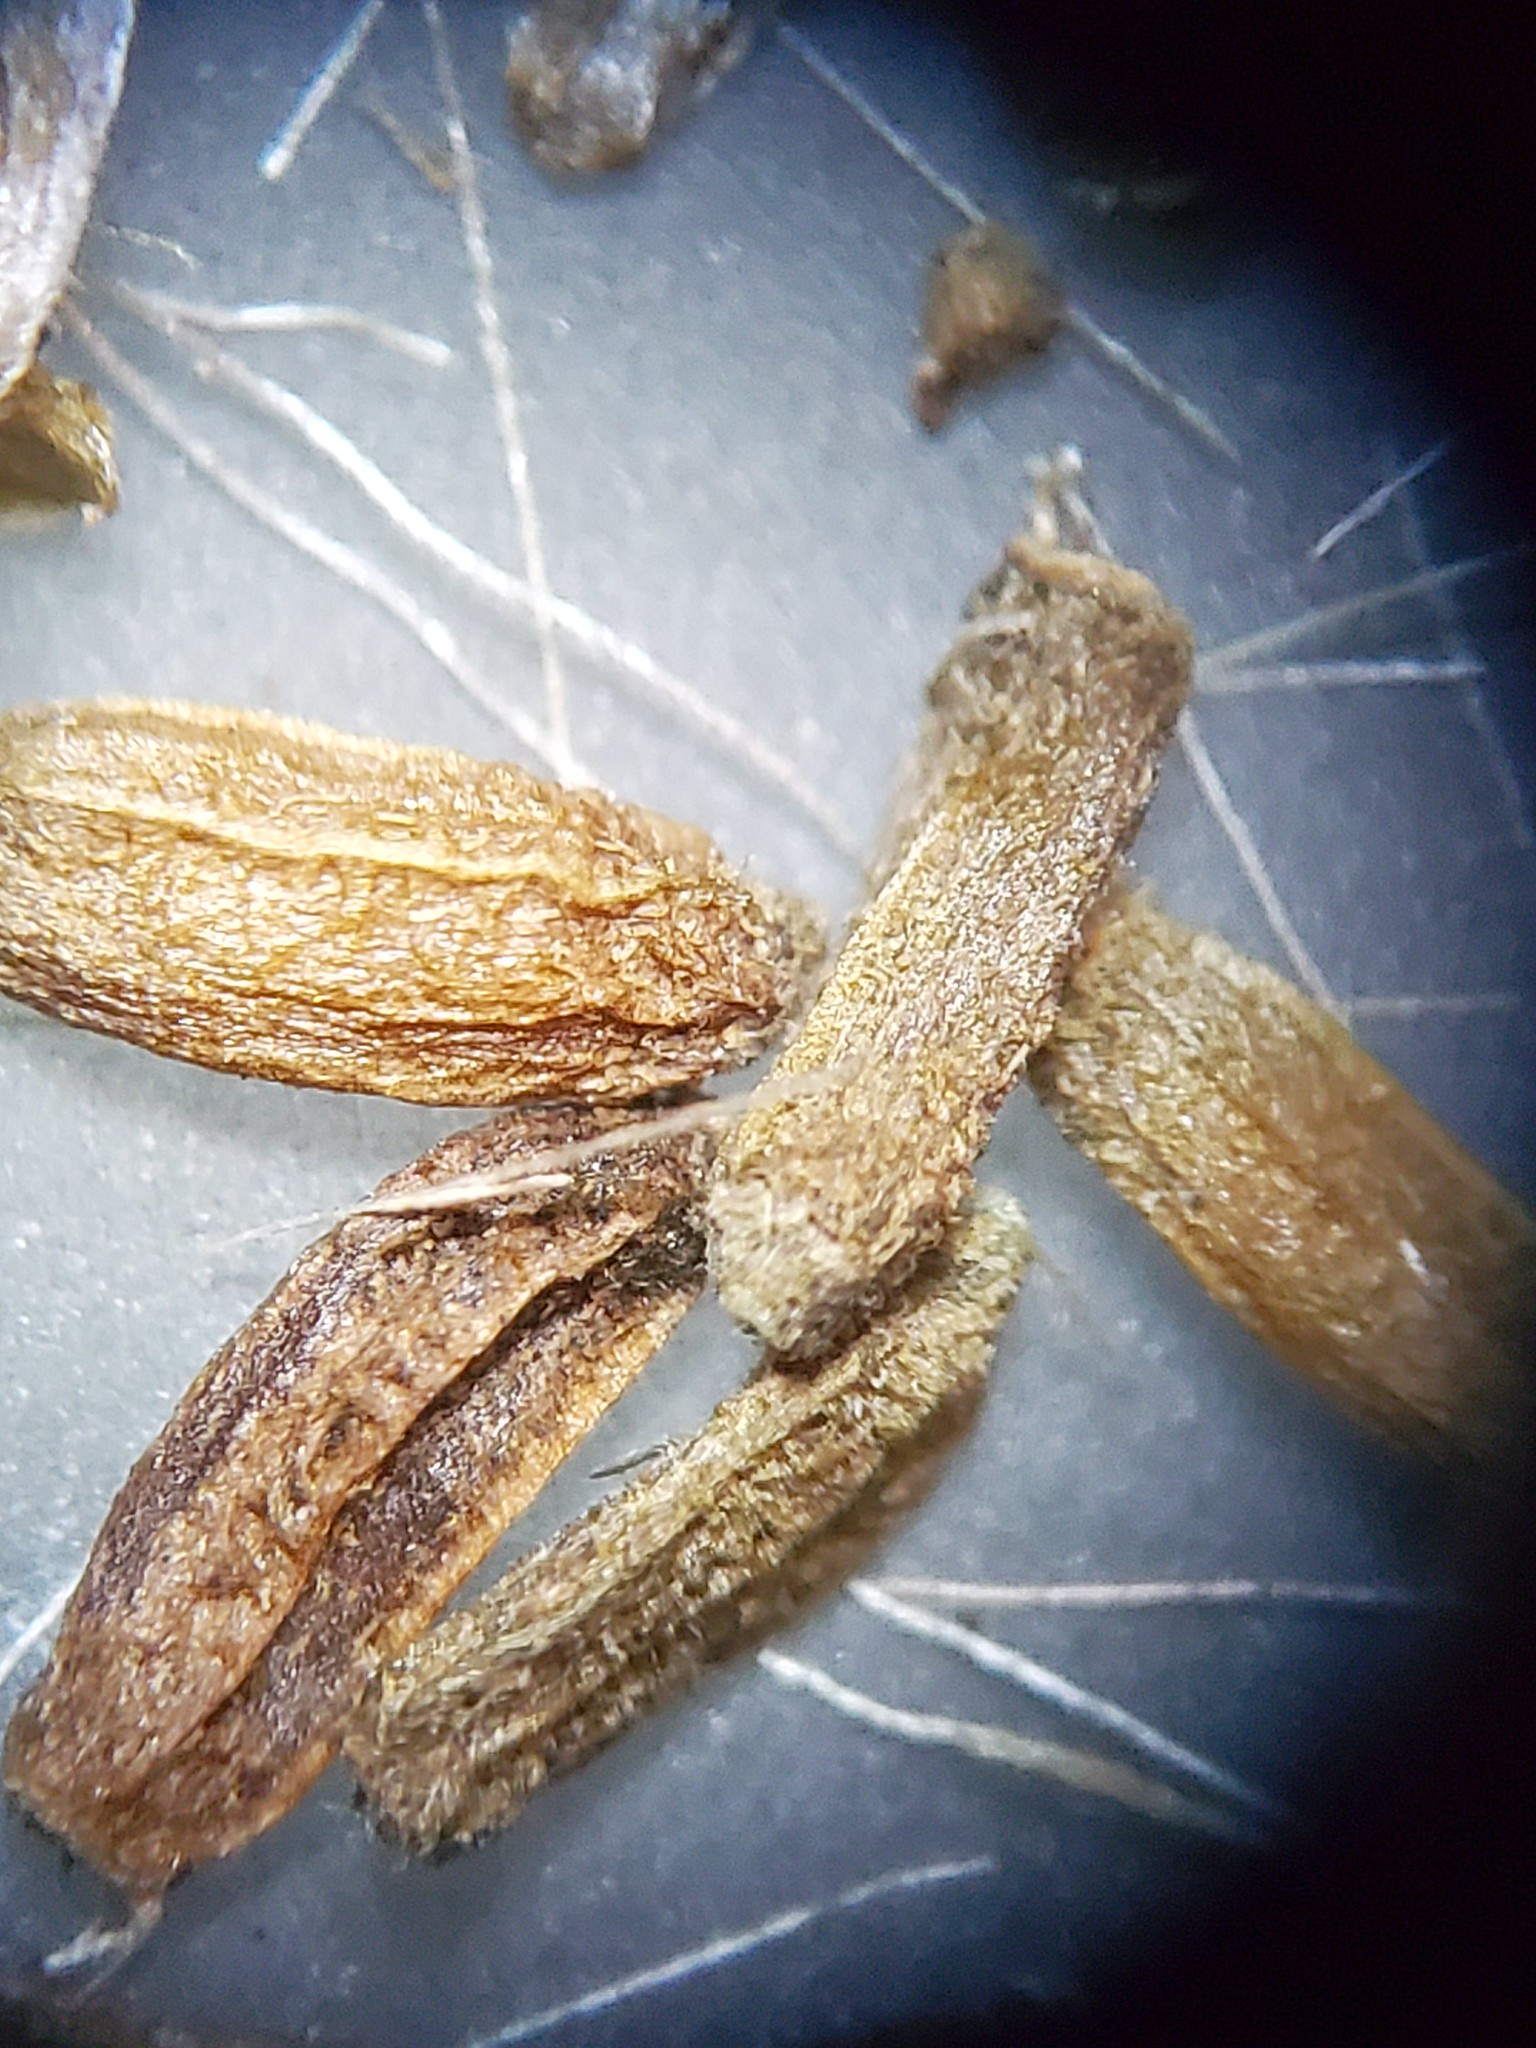 Image of nearly clean Baccharis vanessae seed with pappus remnants.